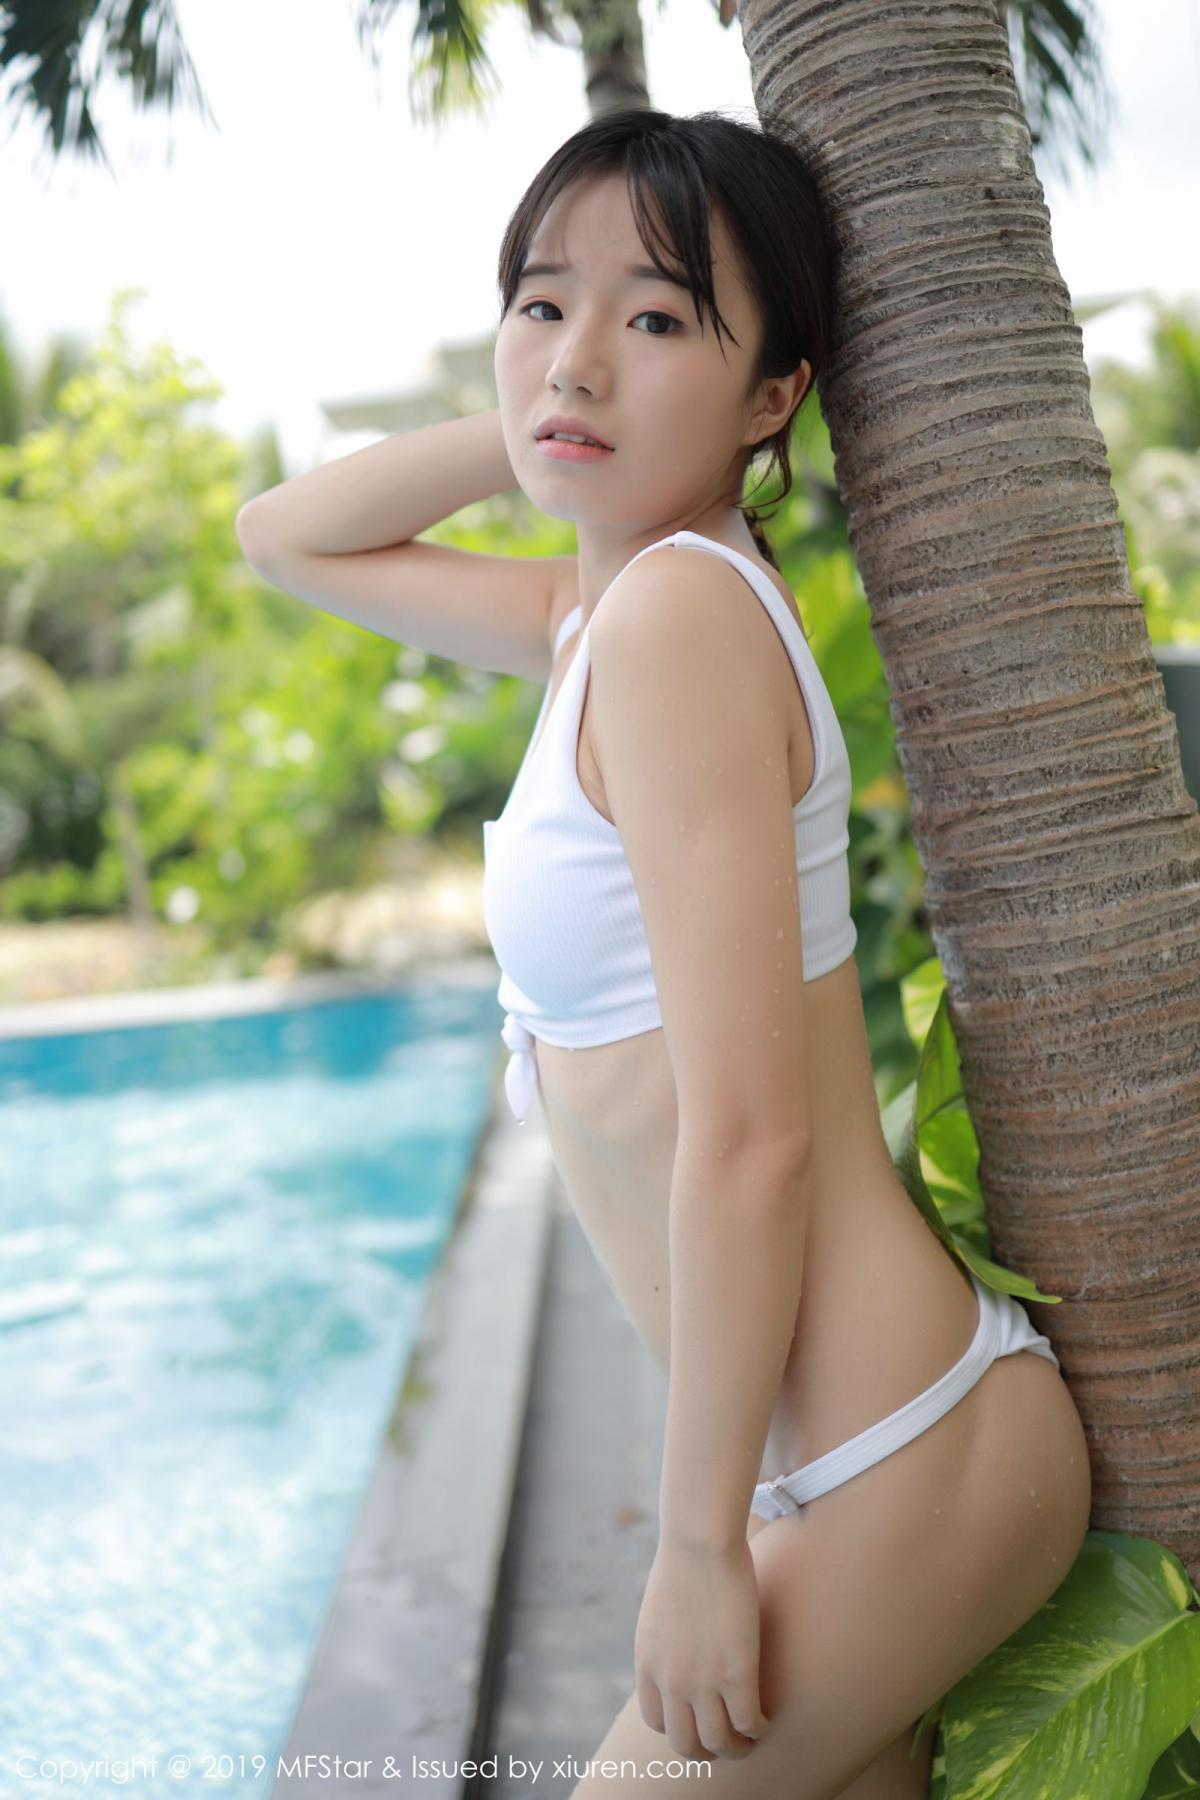 [XiuRen] Vol.214 Cang Jing You Xiang 45P, Bikini, Cang Jing You Xiang, Swim Pool, Xiuren